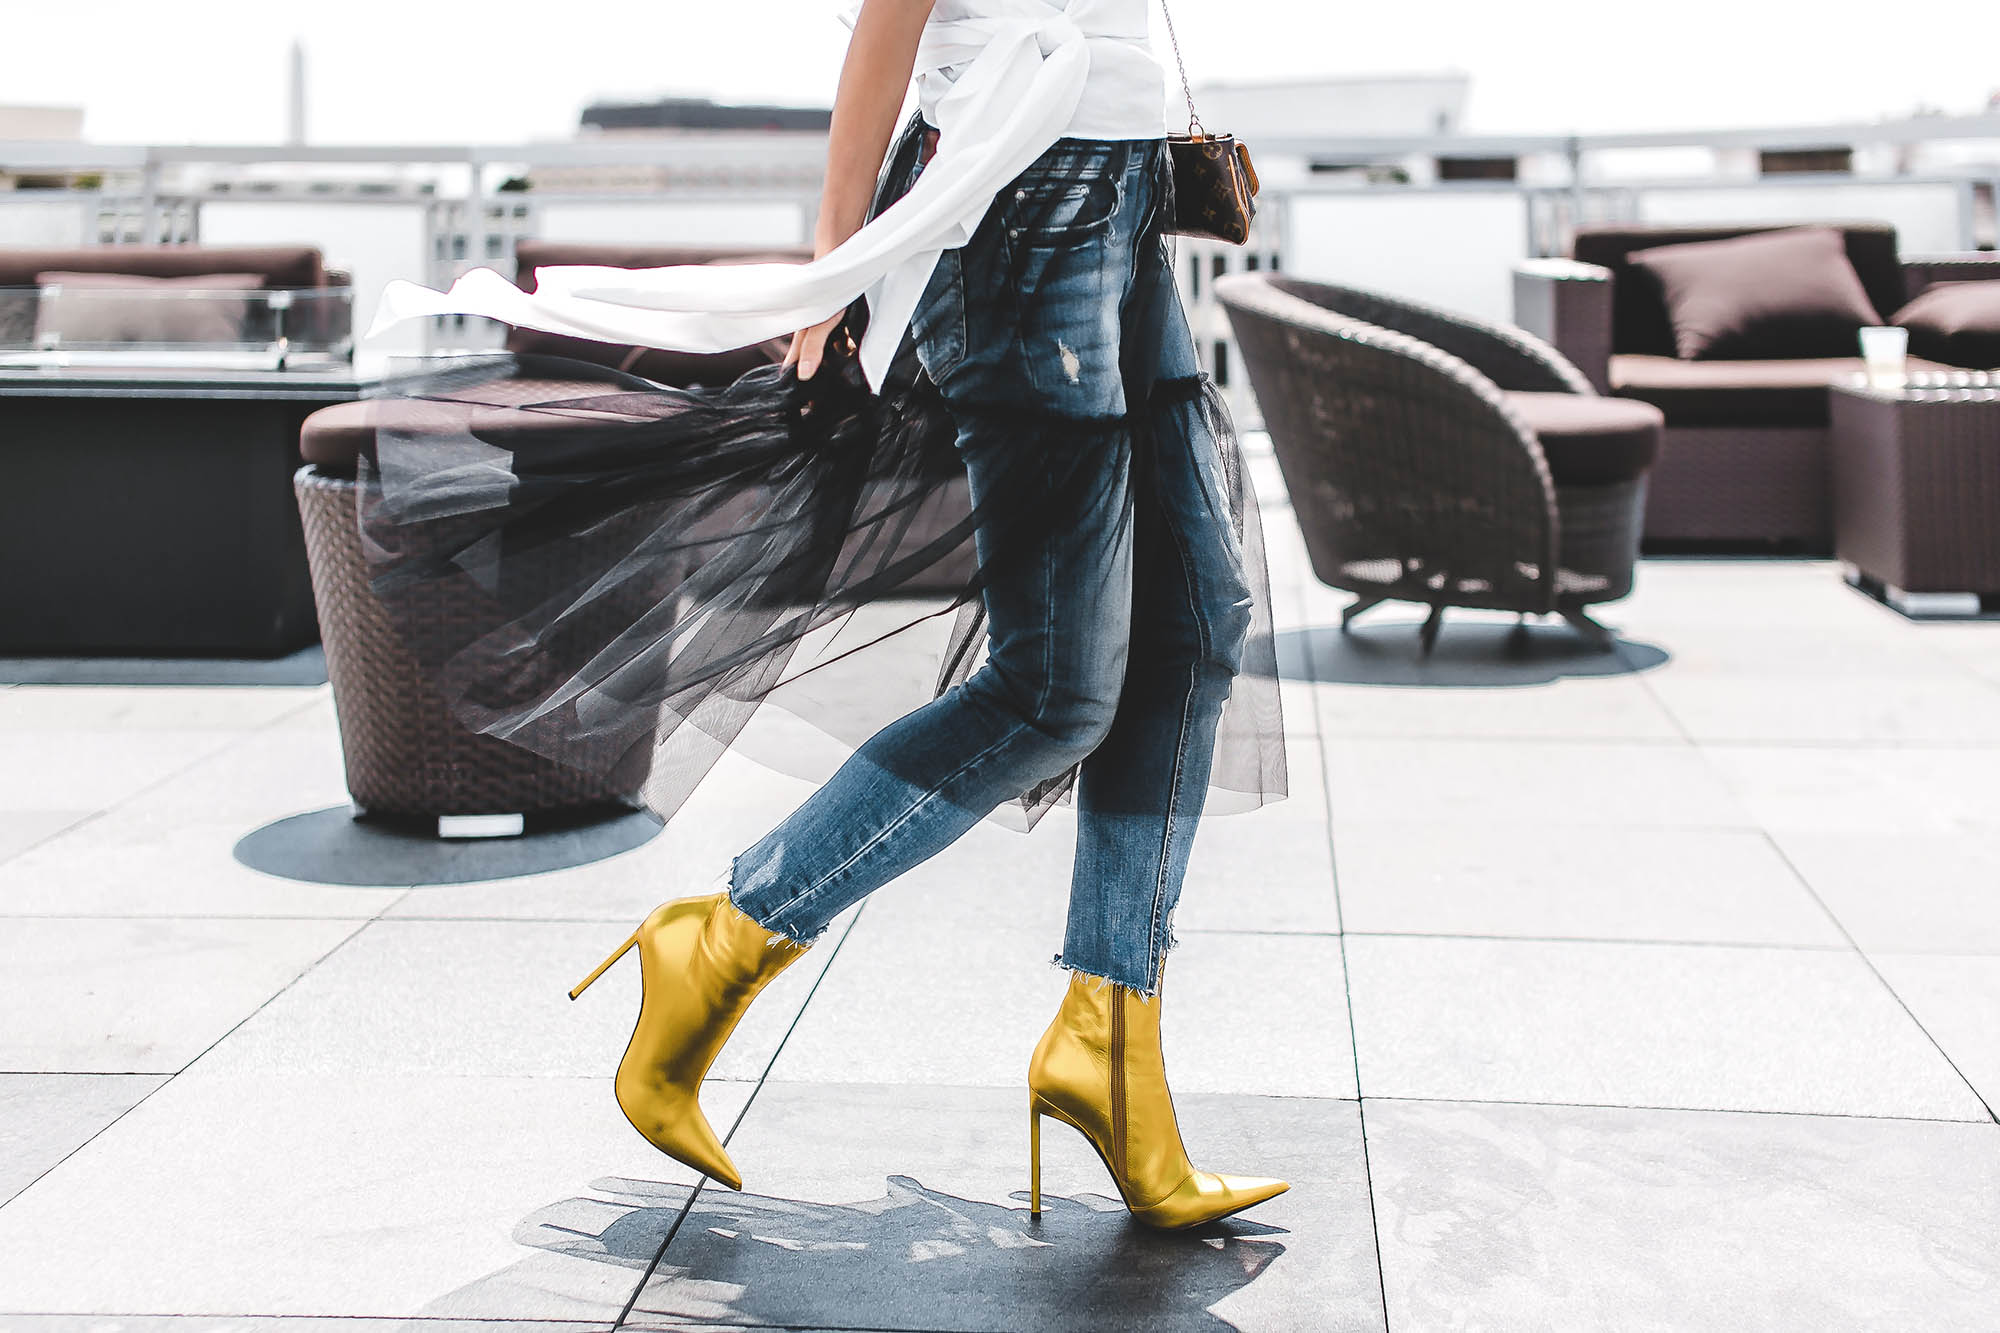 Black dress yellow accessories - I Was Excited To Have Found These Booties By Haider Ackermann In A Fun Metallic Yellow Hue And Paired Them With A Simple Black White And Denim Palette To